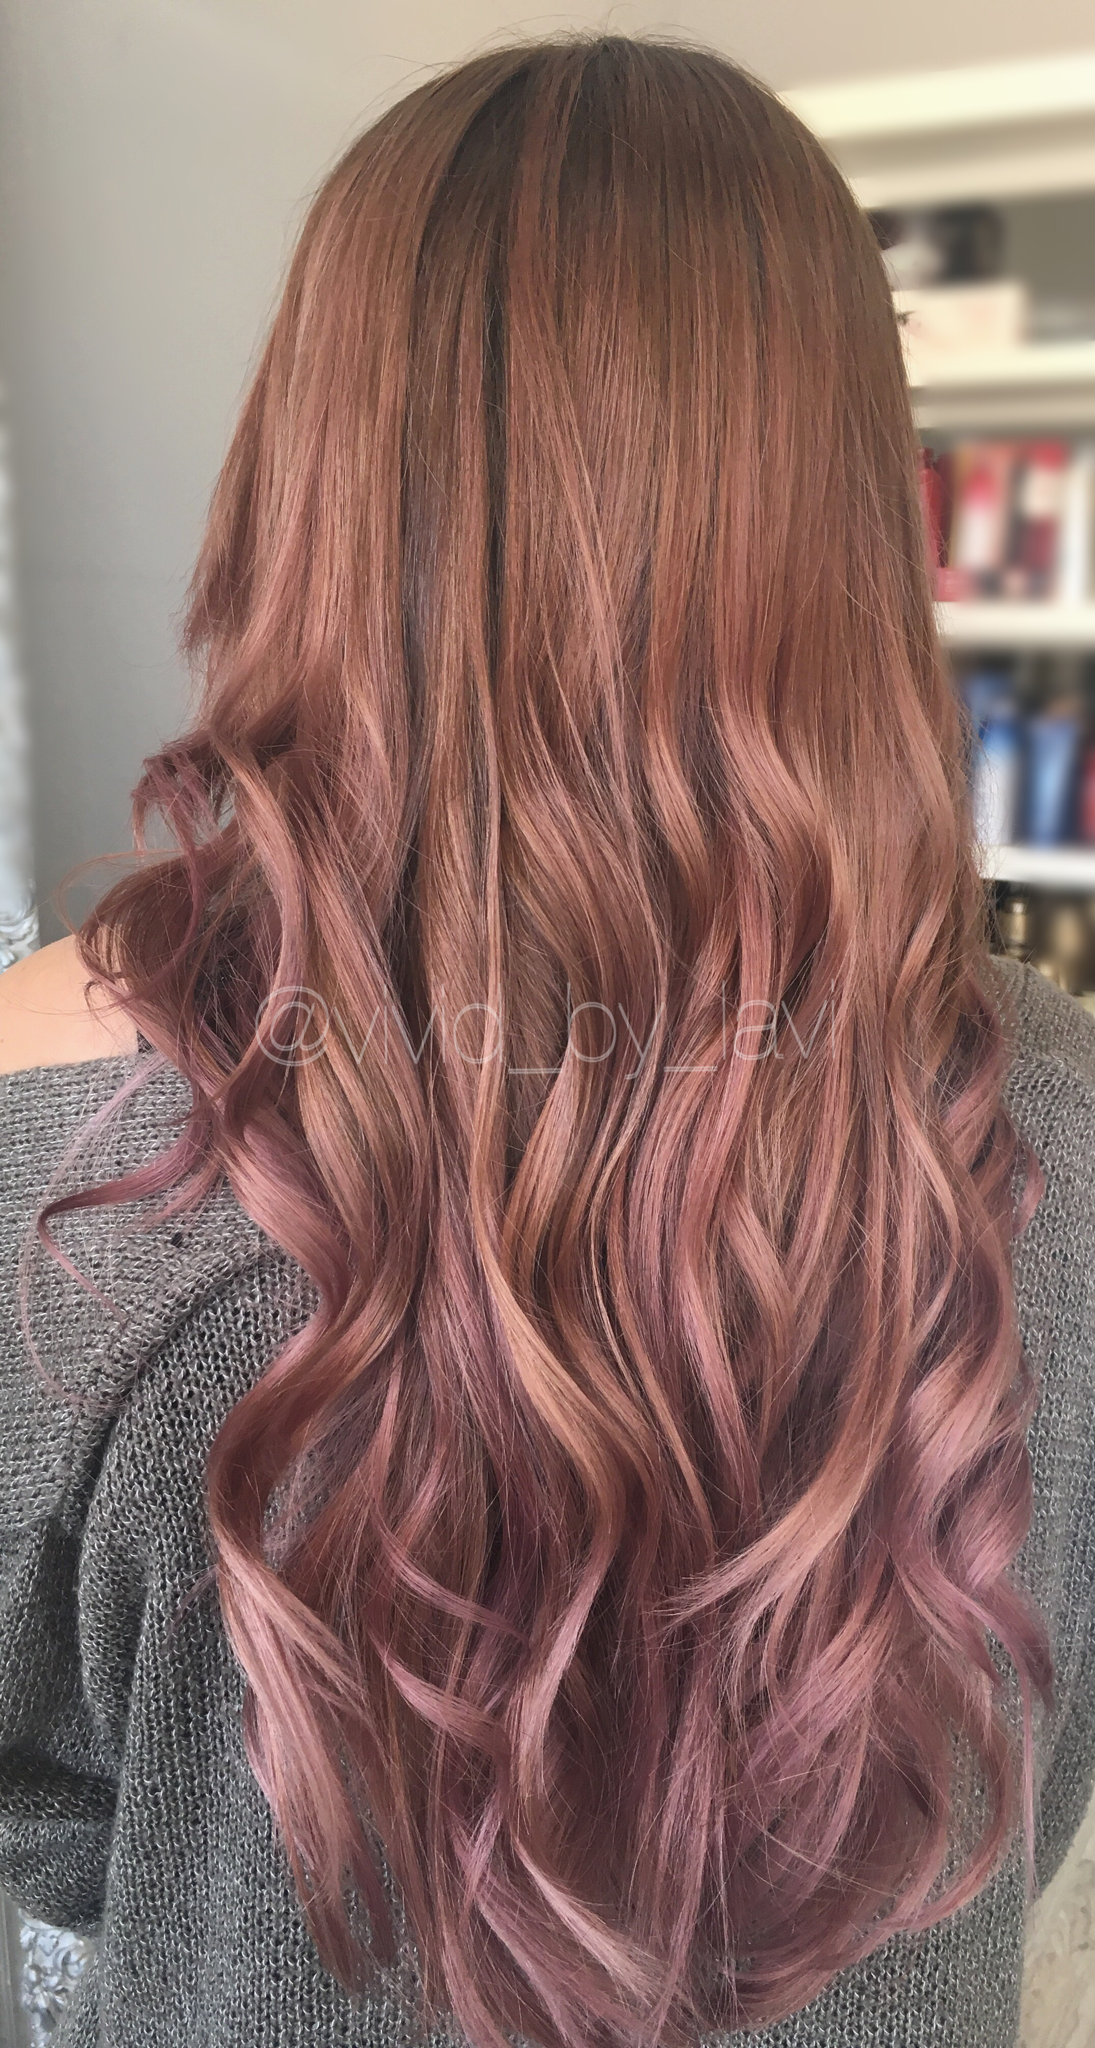 Dusty Rose Done By Vivid By Lavi Instagram Balayage